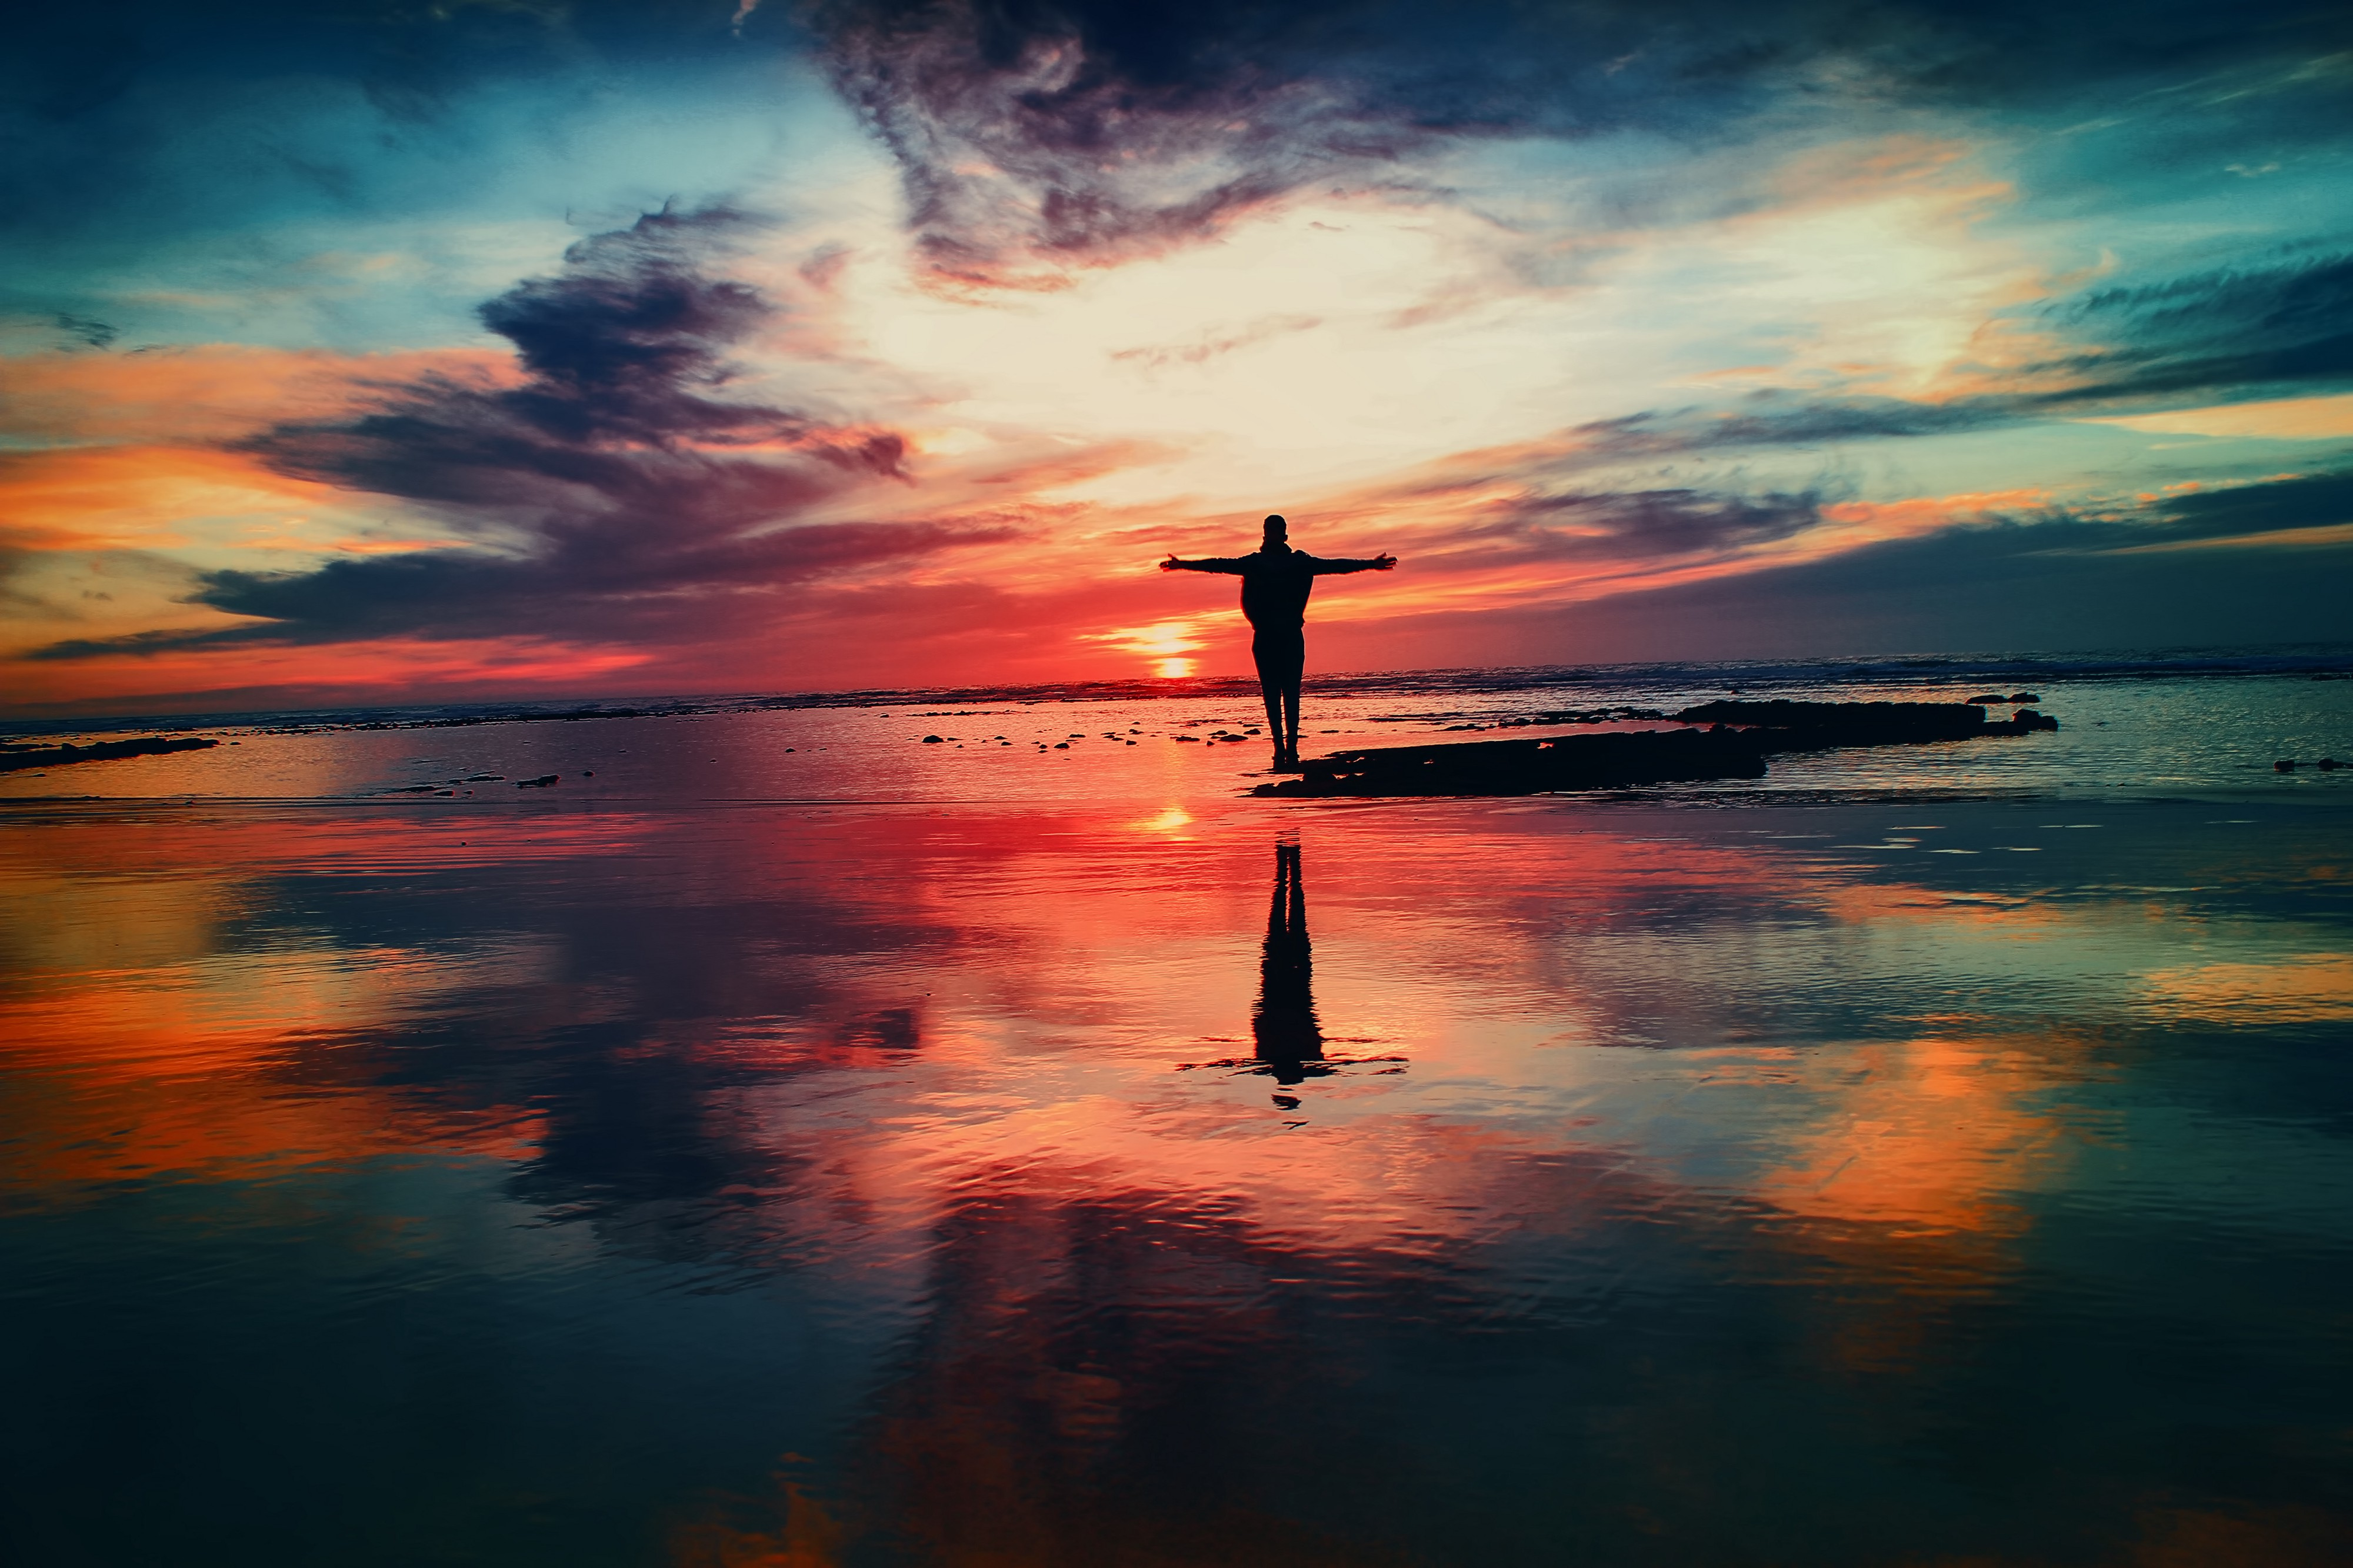 silhouette on beach with colorful sunset around & reflection